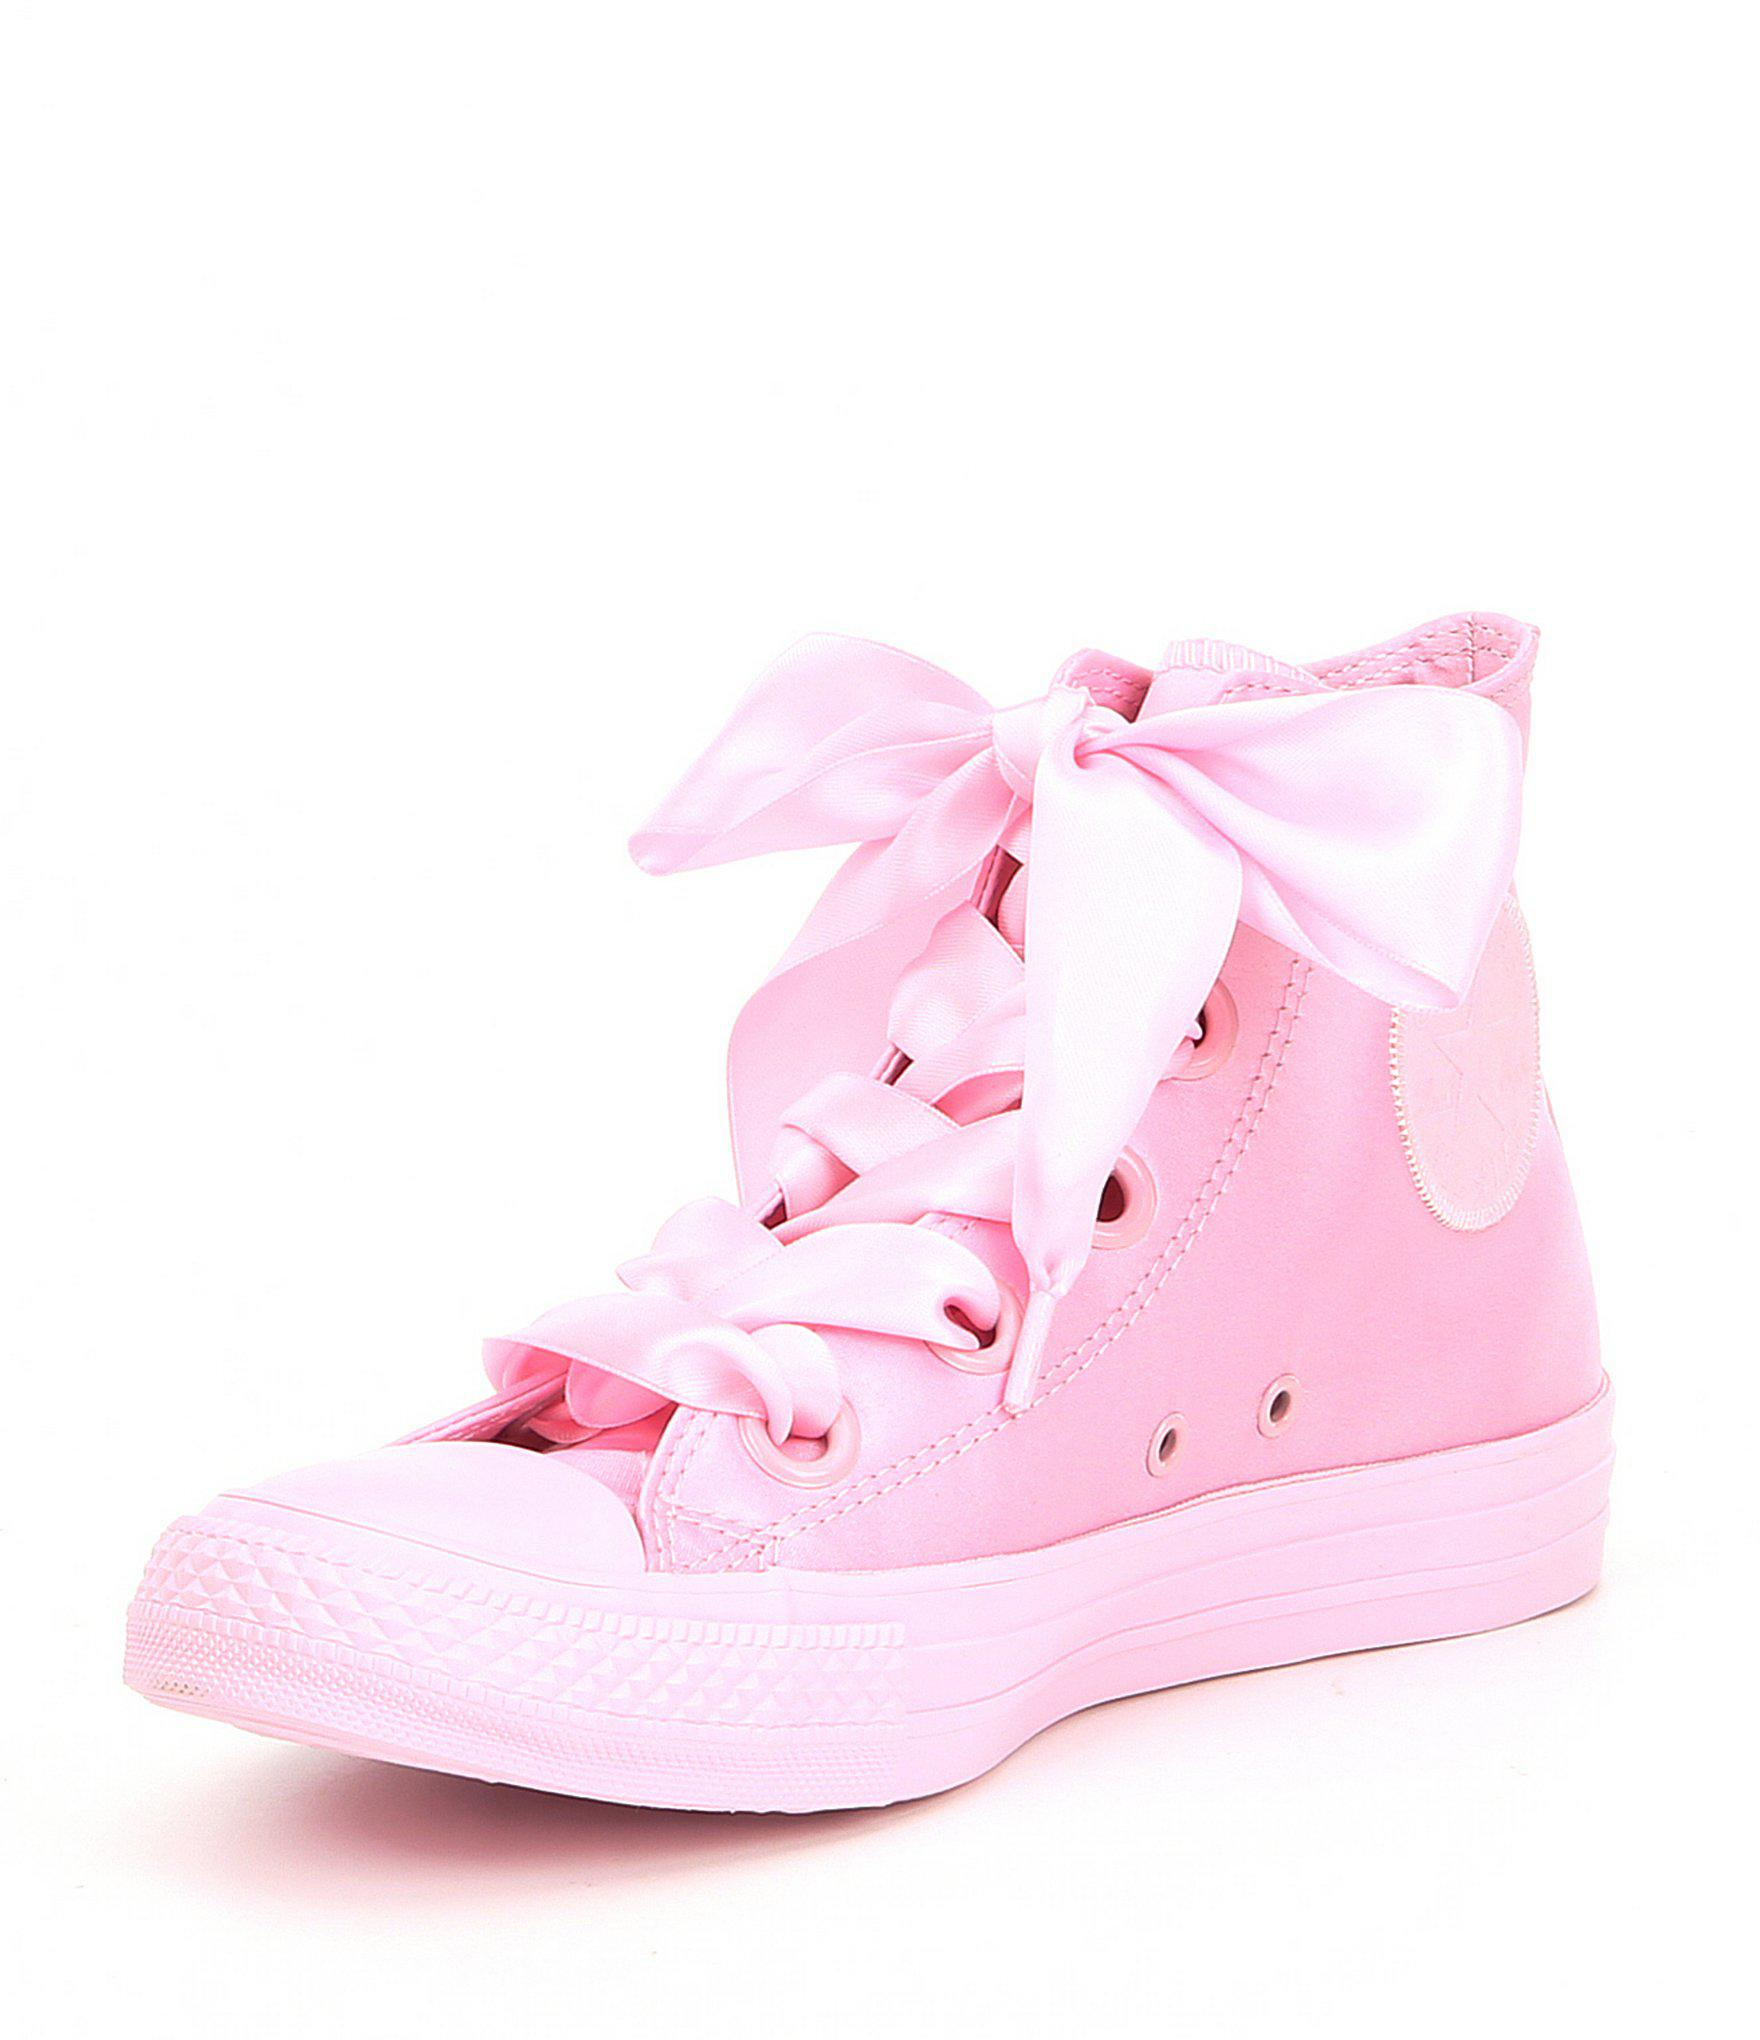 8b84b2a1a196b9 Lyst - Converse Big Eyelets Satin High Top Sneakers in Pink